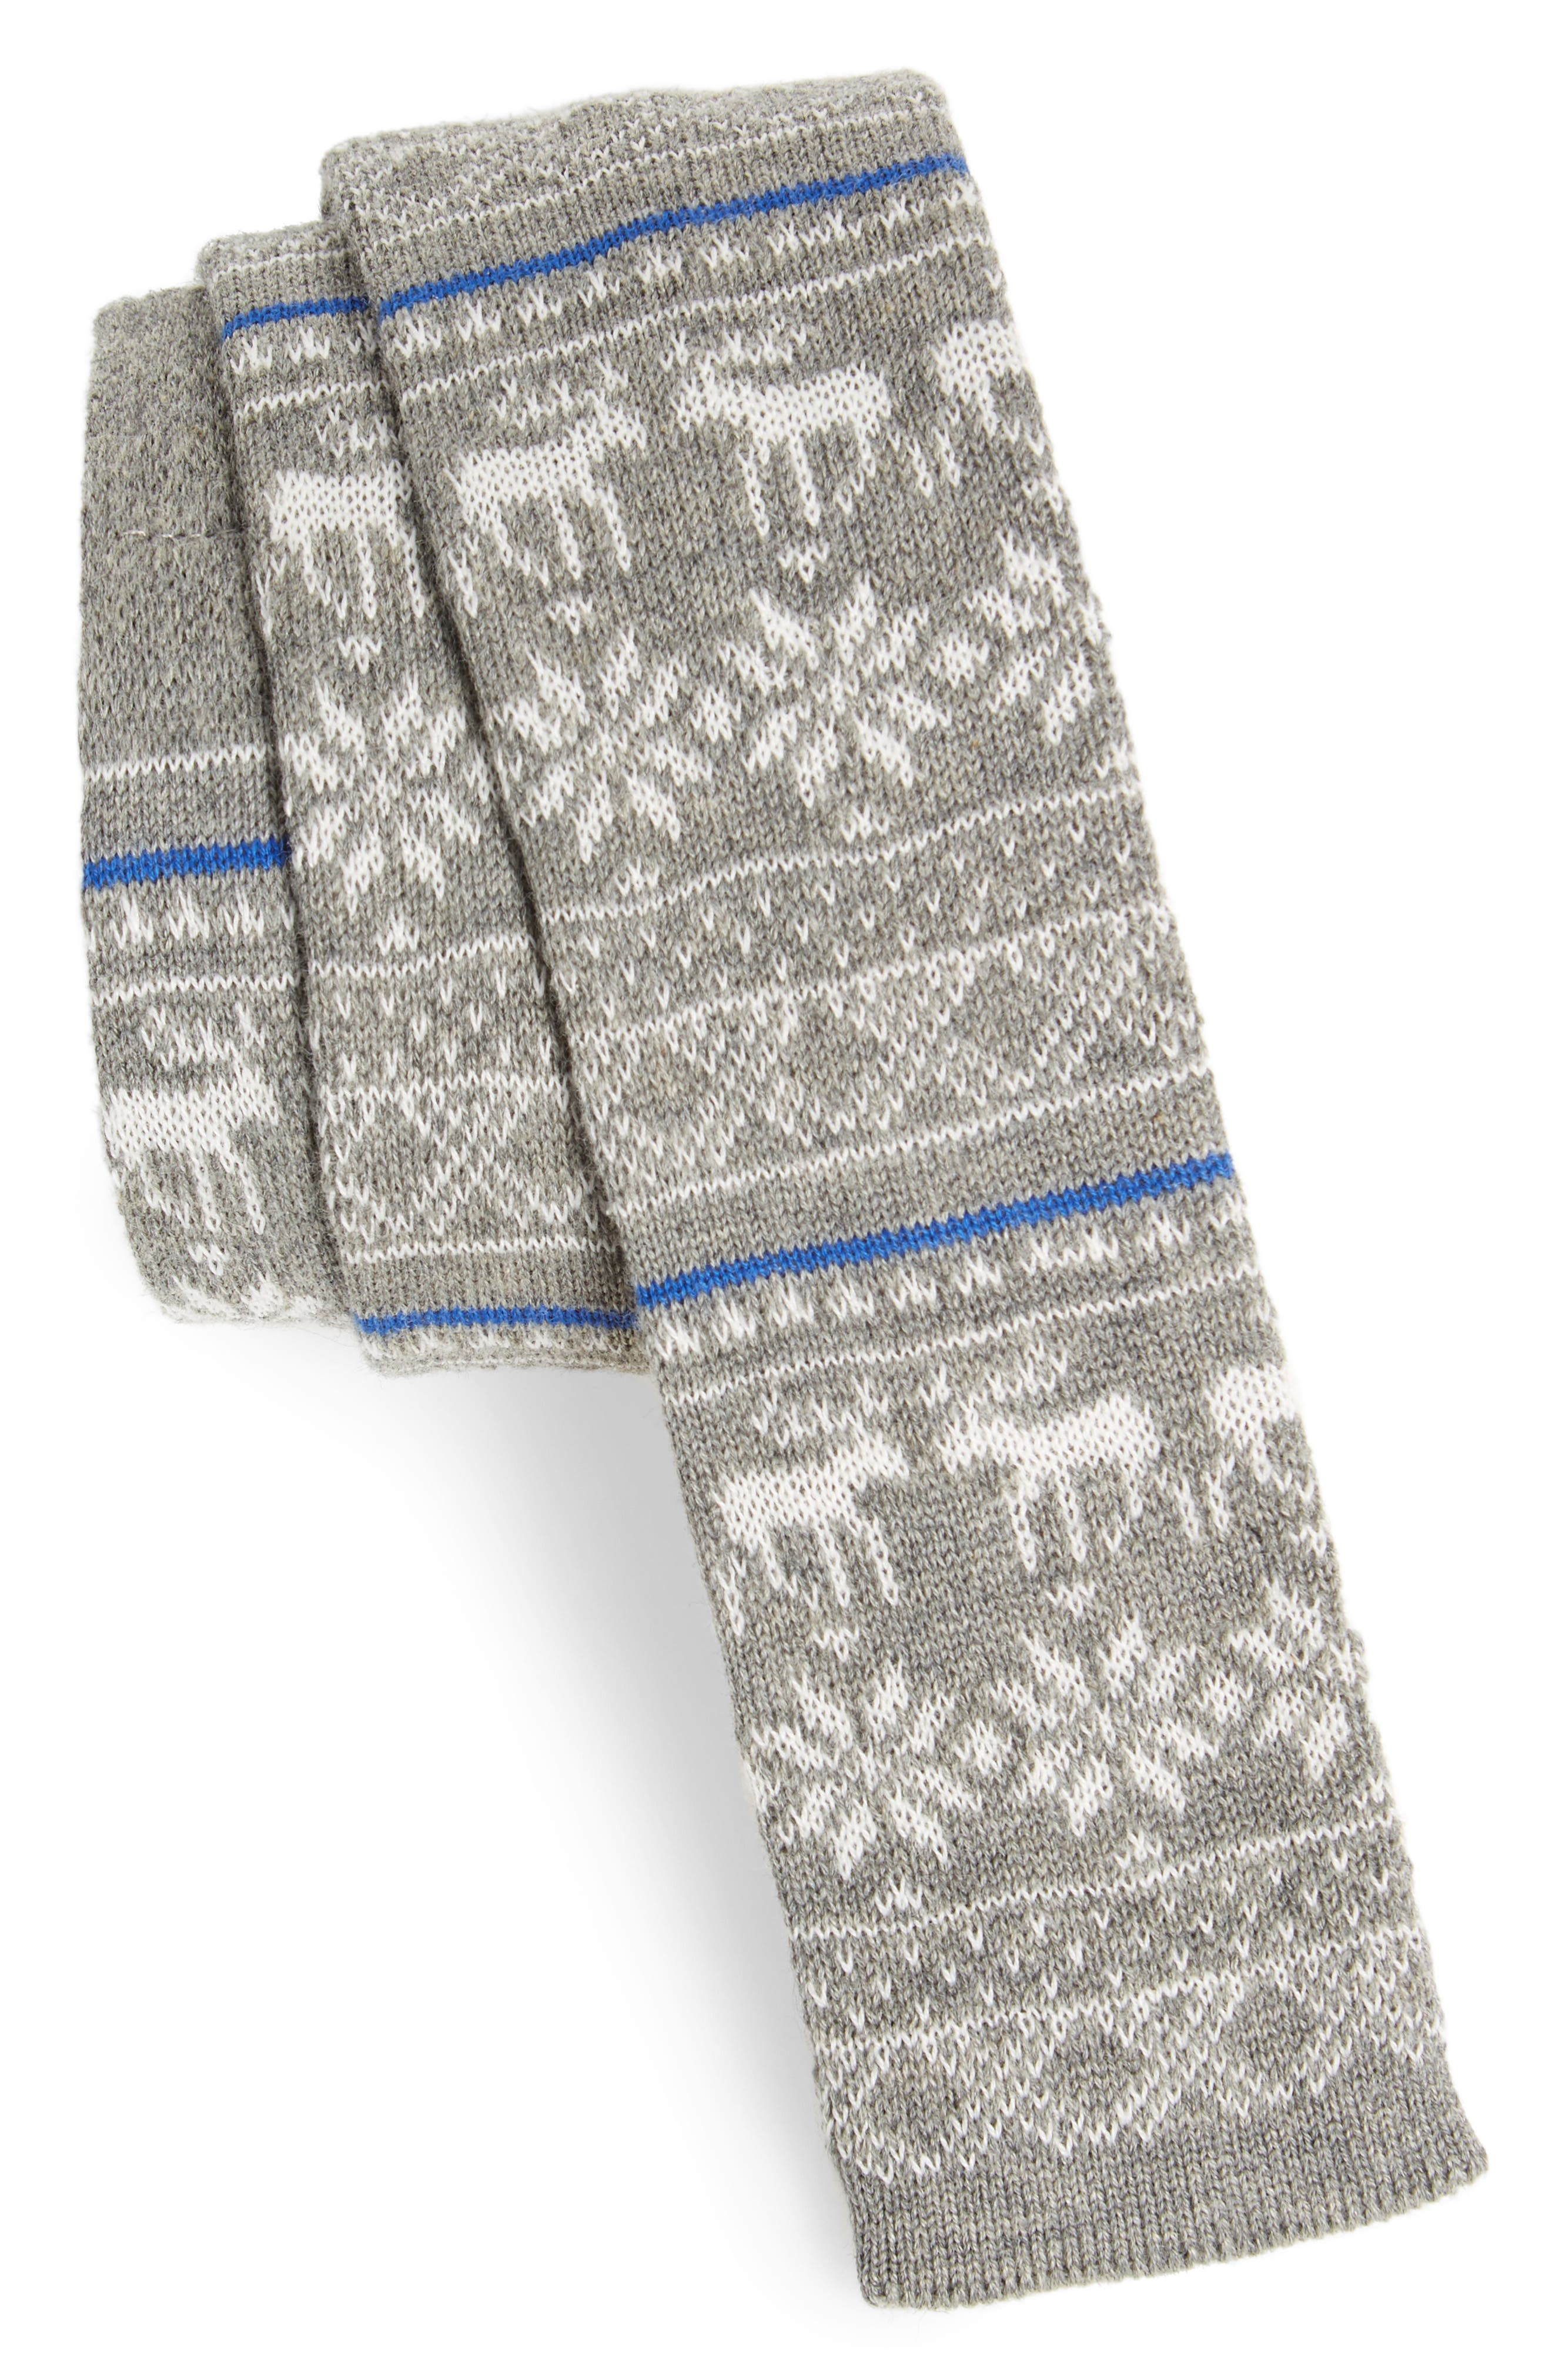 Main Image - Nordstrom Men's Shop Knit Cotton Tie